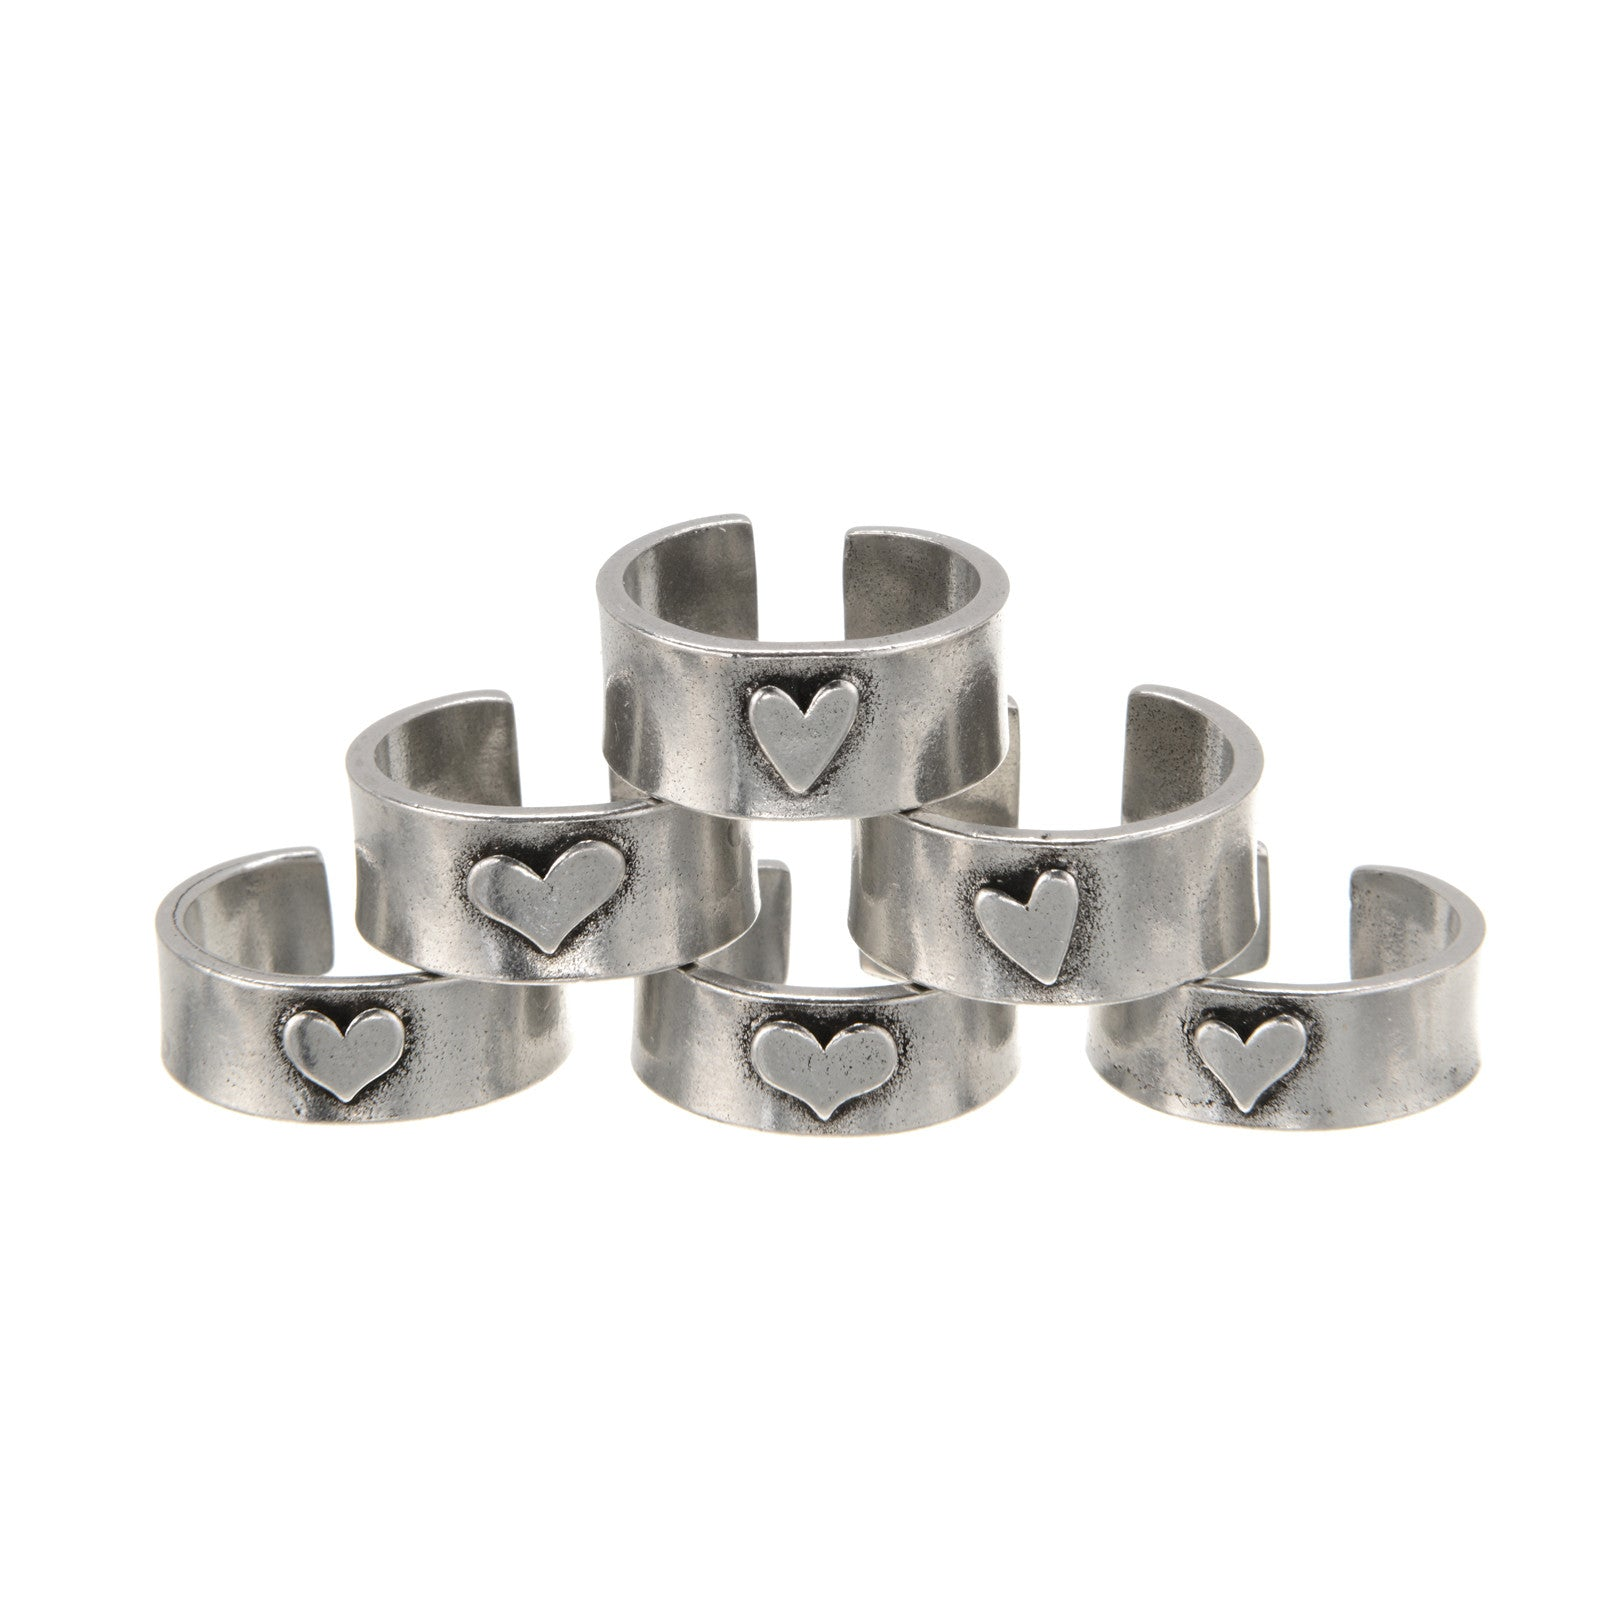 Peaceful Heart Ring - Whitney Howard Designs